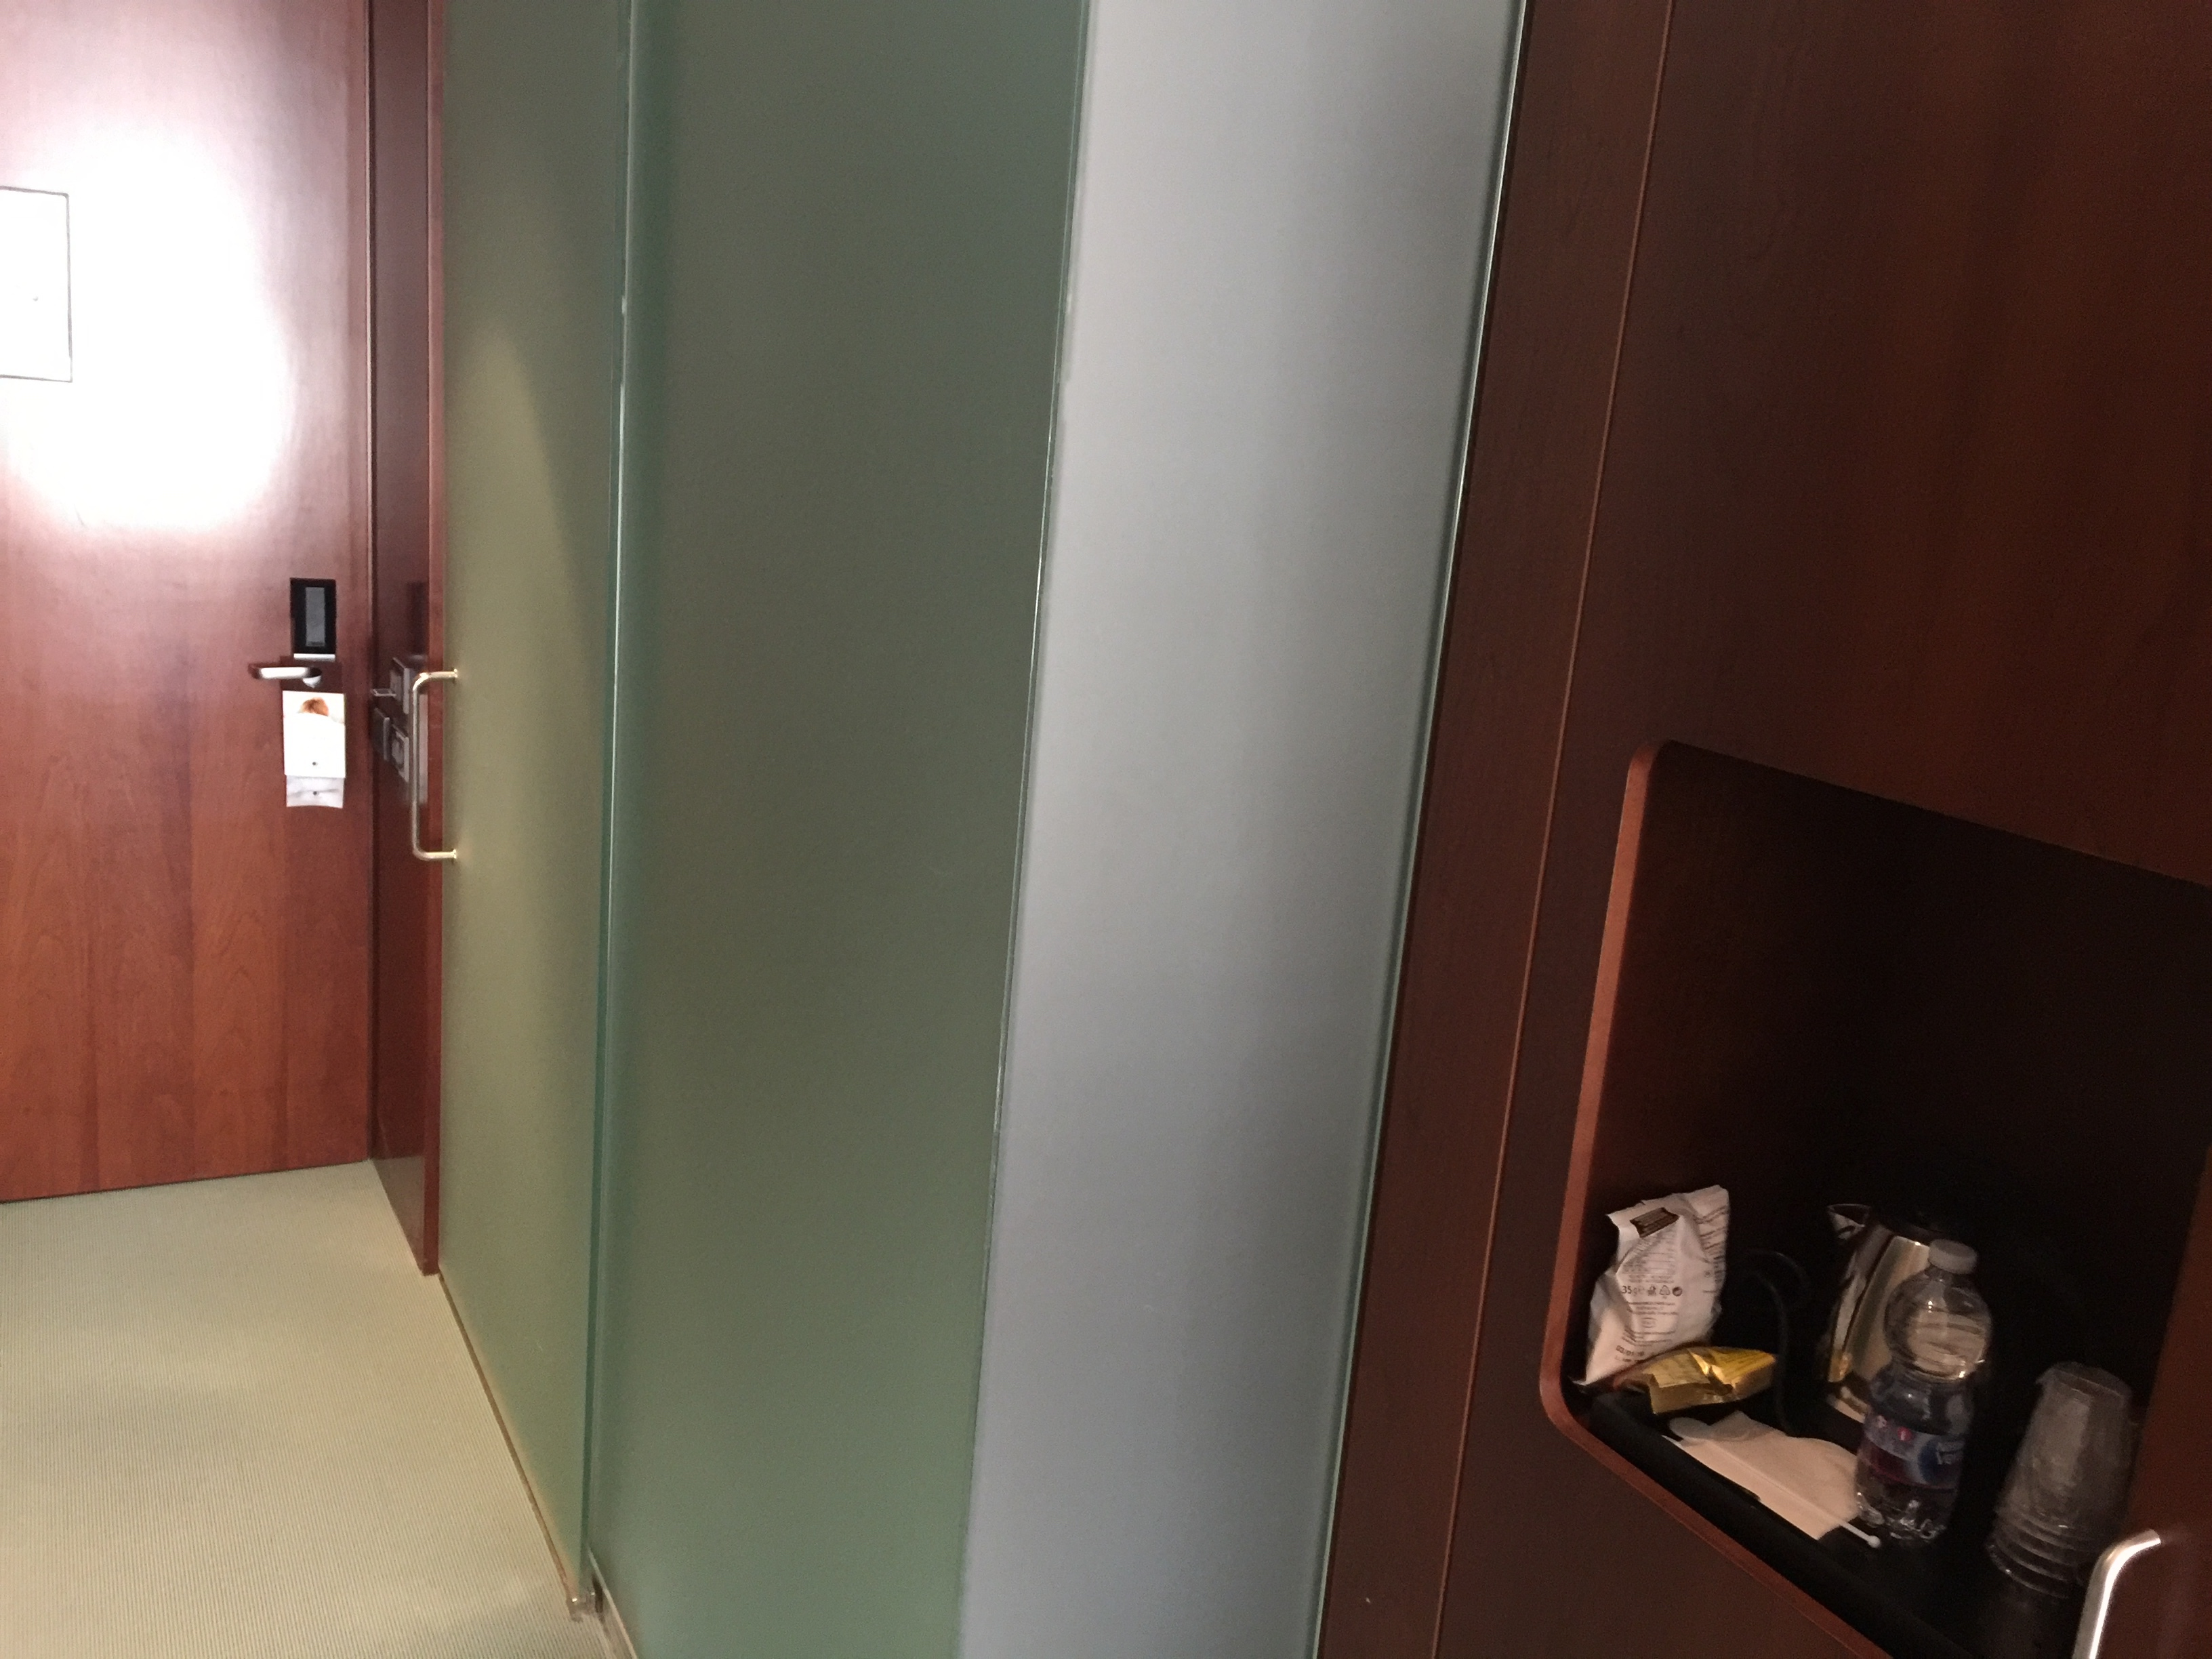 Room amenities & bathroom entrance - DoubleTree Turin Lingotto